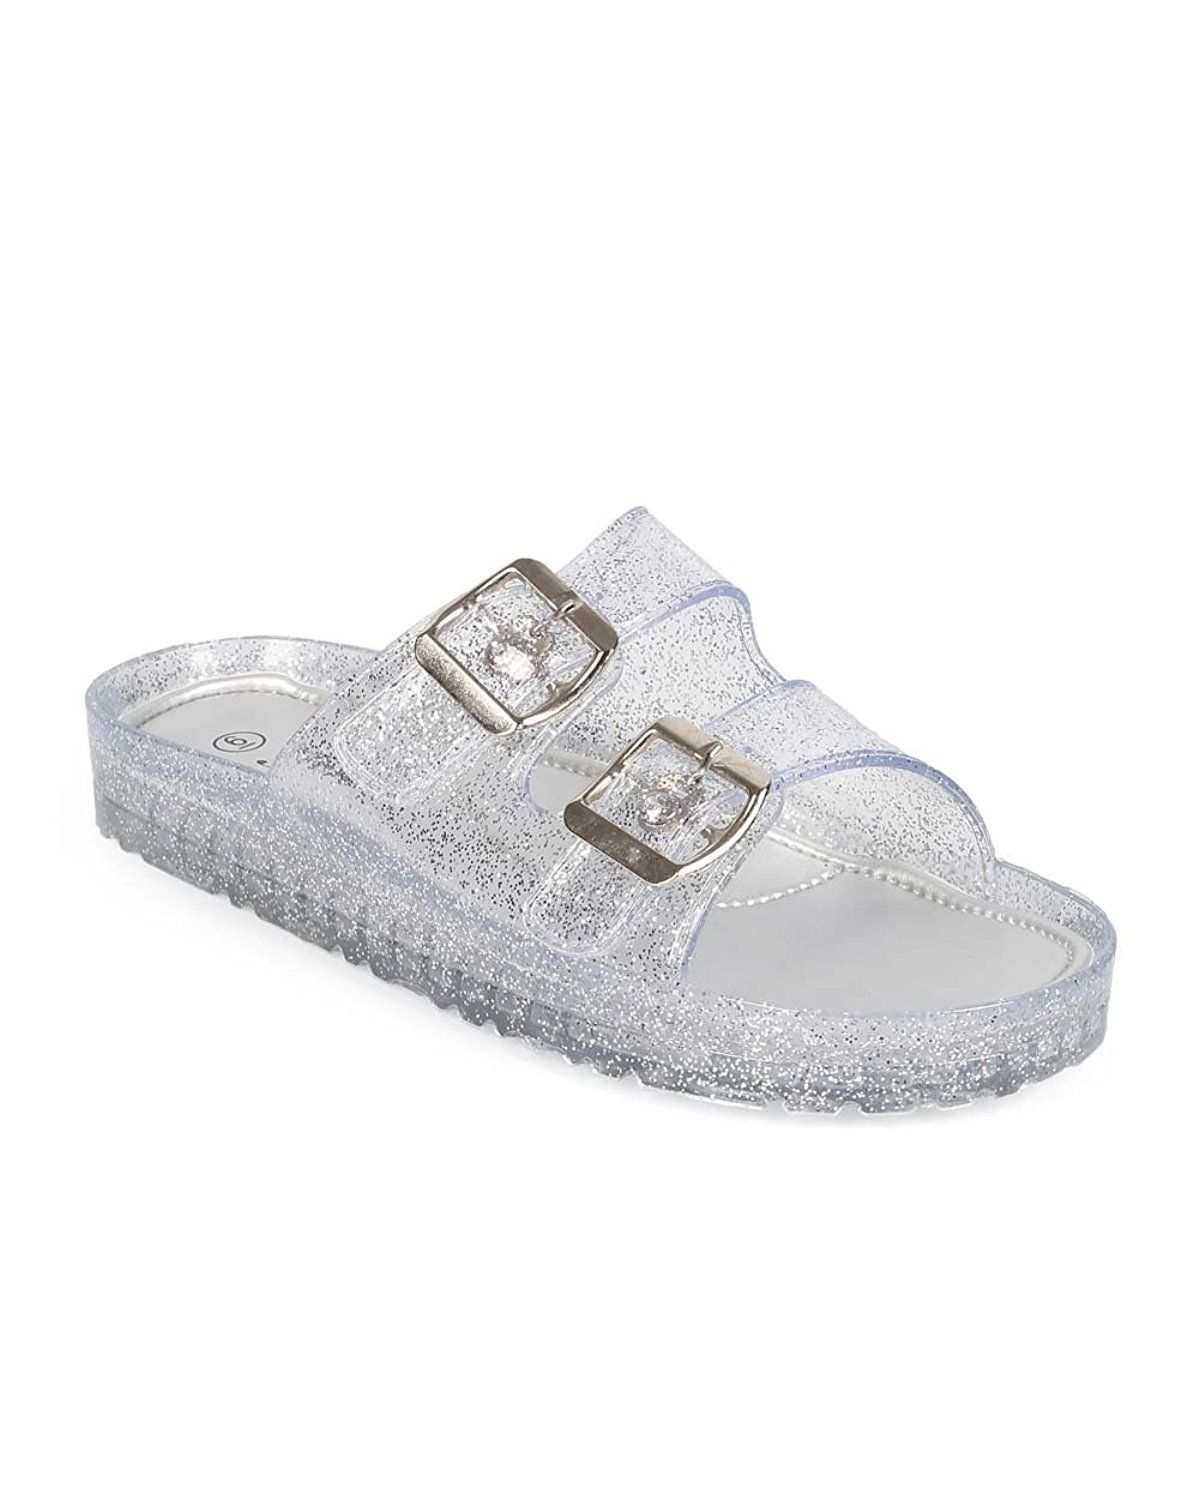 d5cea9c6a8d97 Forever EA81 Women Glitter Jelly Open Toe Double Buckle Footbed Sandal -  Silver   Wow! I love this. Check it out now!   Jelly Sandals